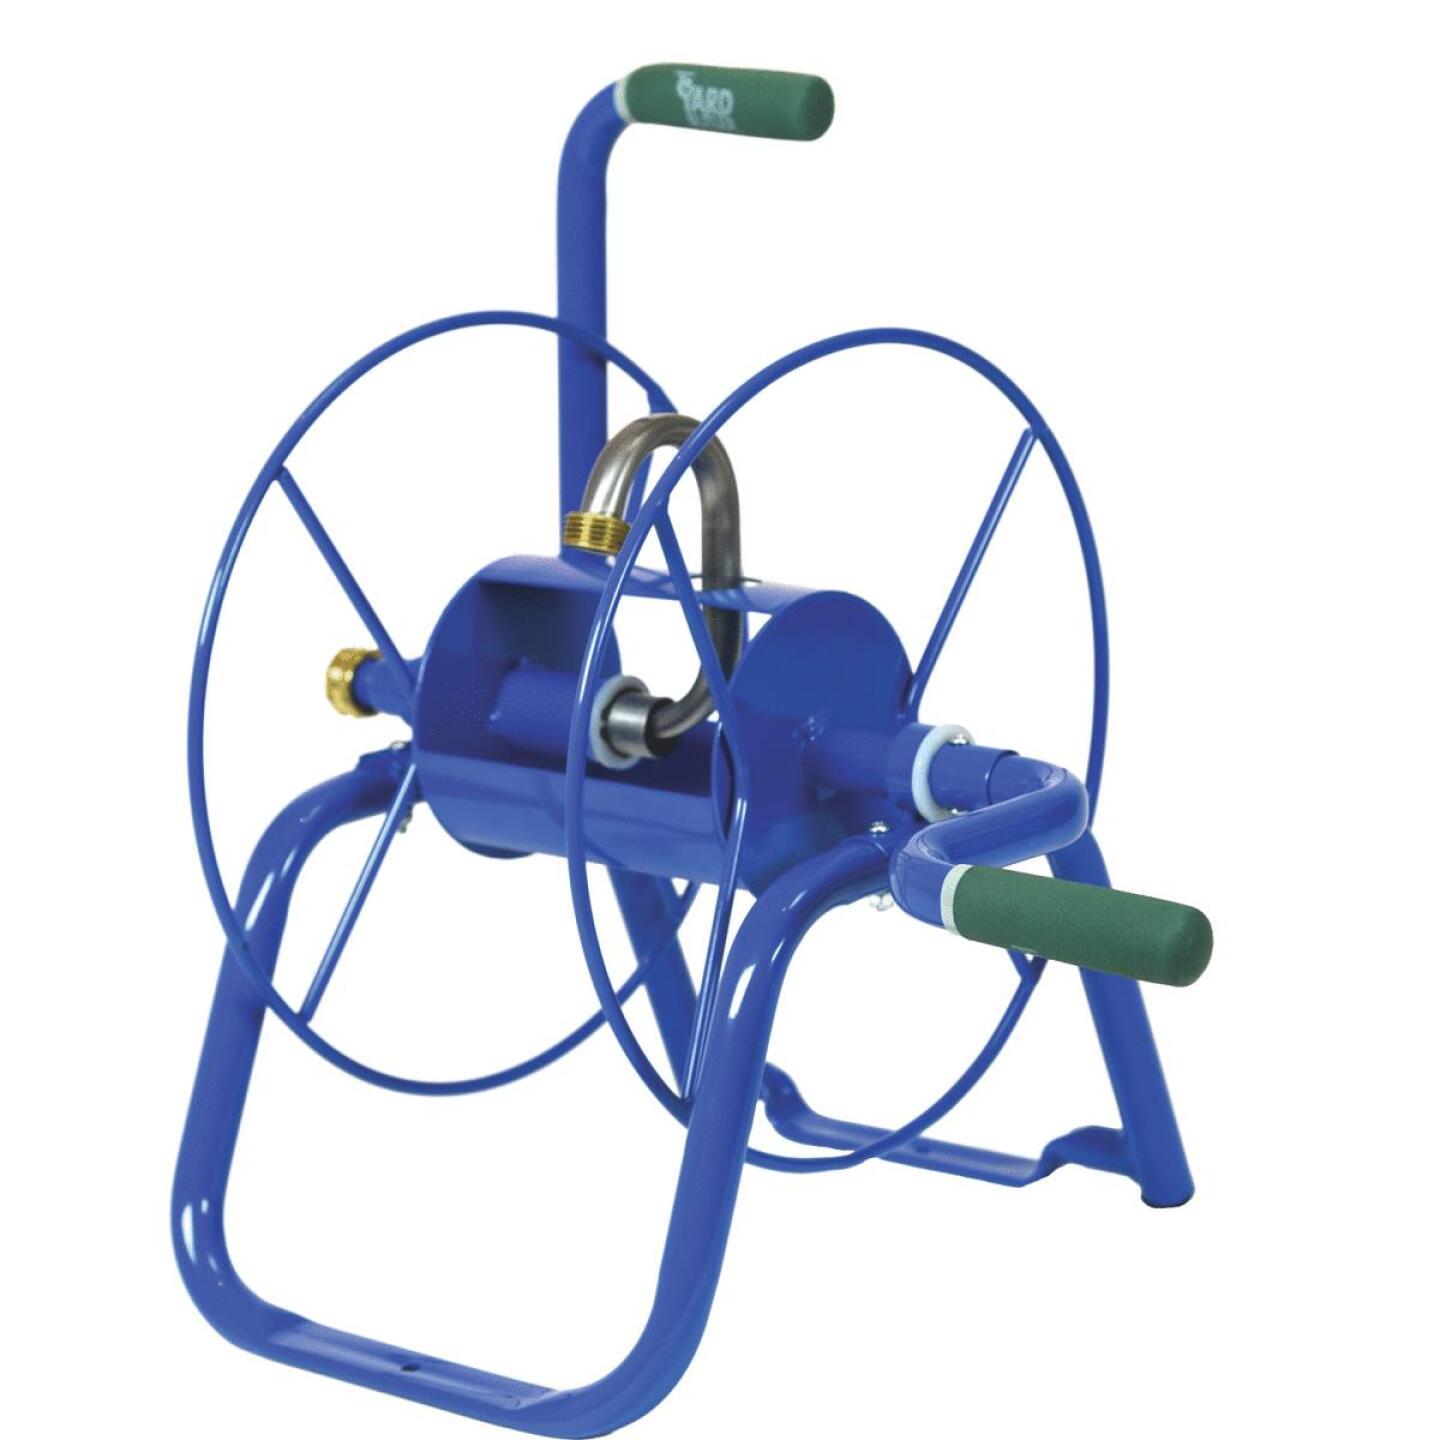 Yard Butler Handy Reel 75 Ft. x 5/8 In. Blue Steel Hose Reel Image 1